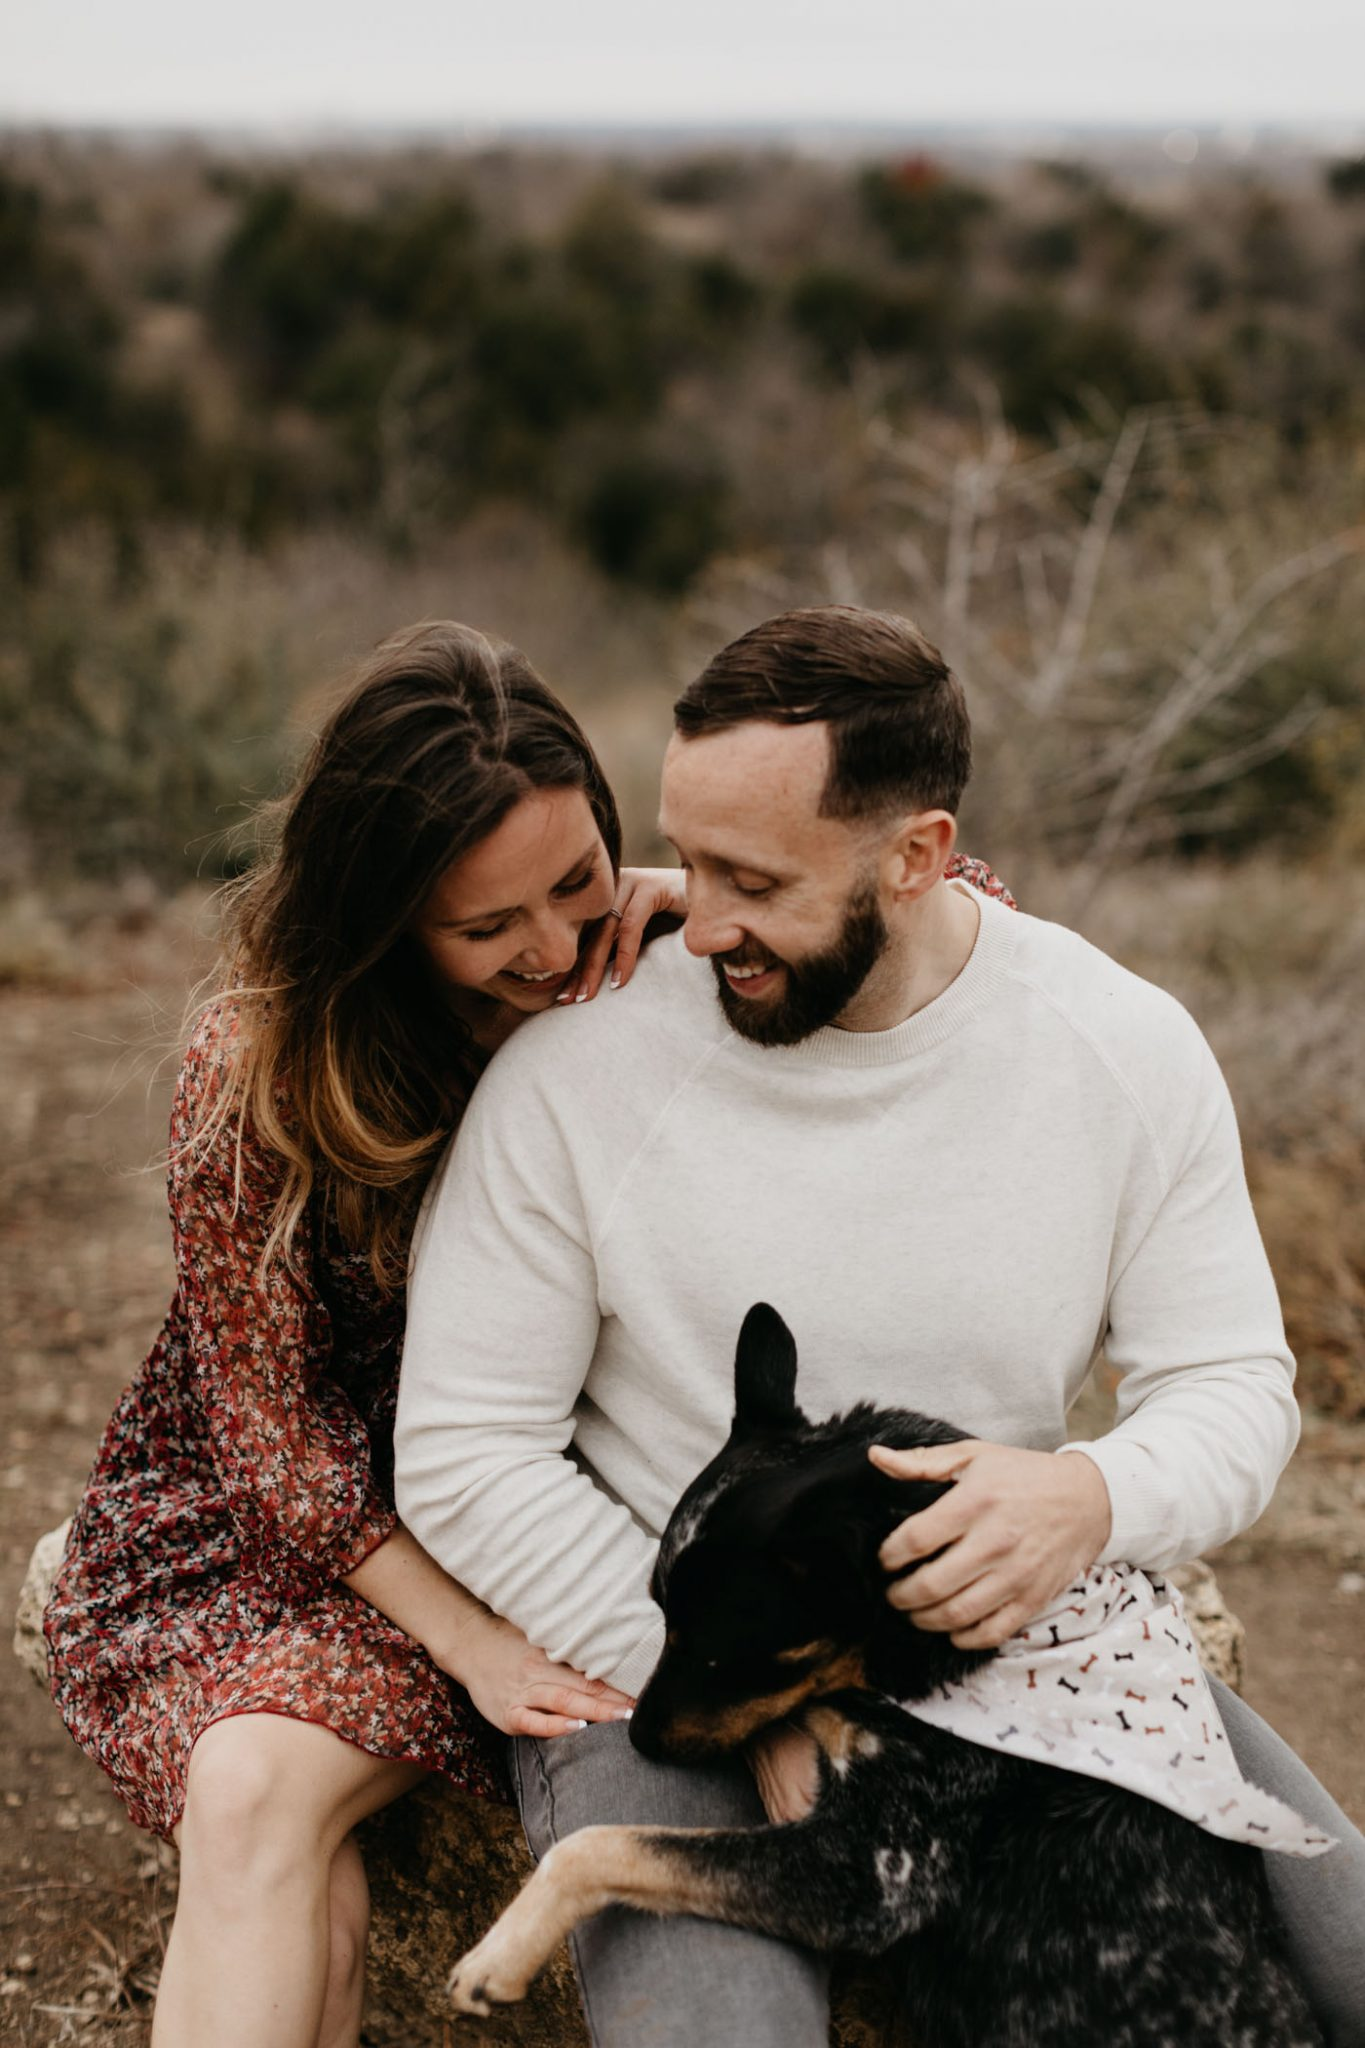 Cute couple playing with their dog during a couples photography session